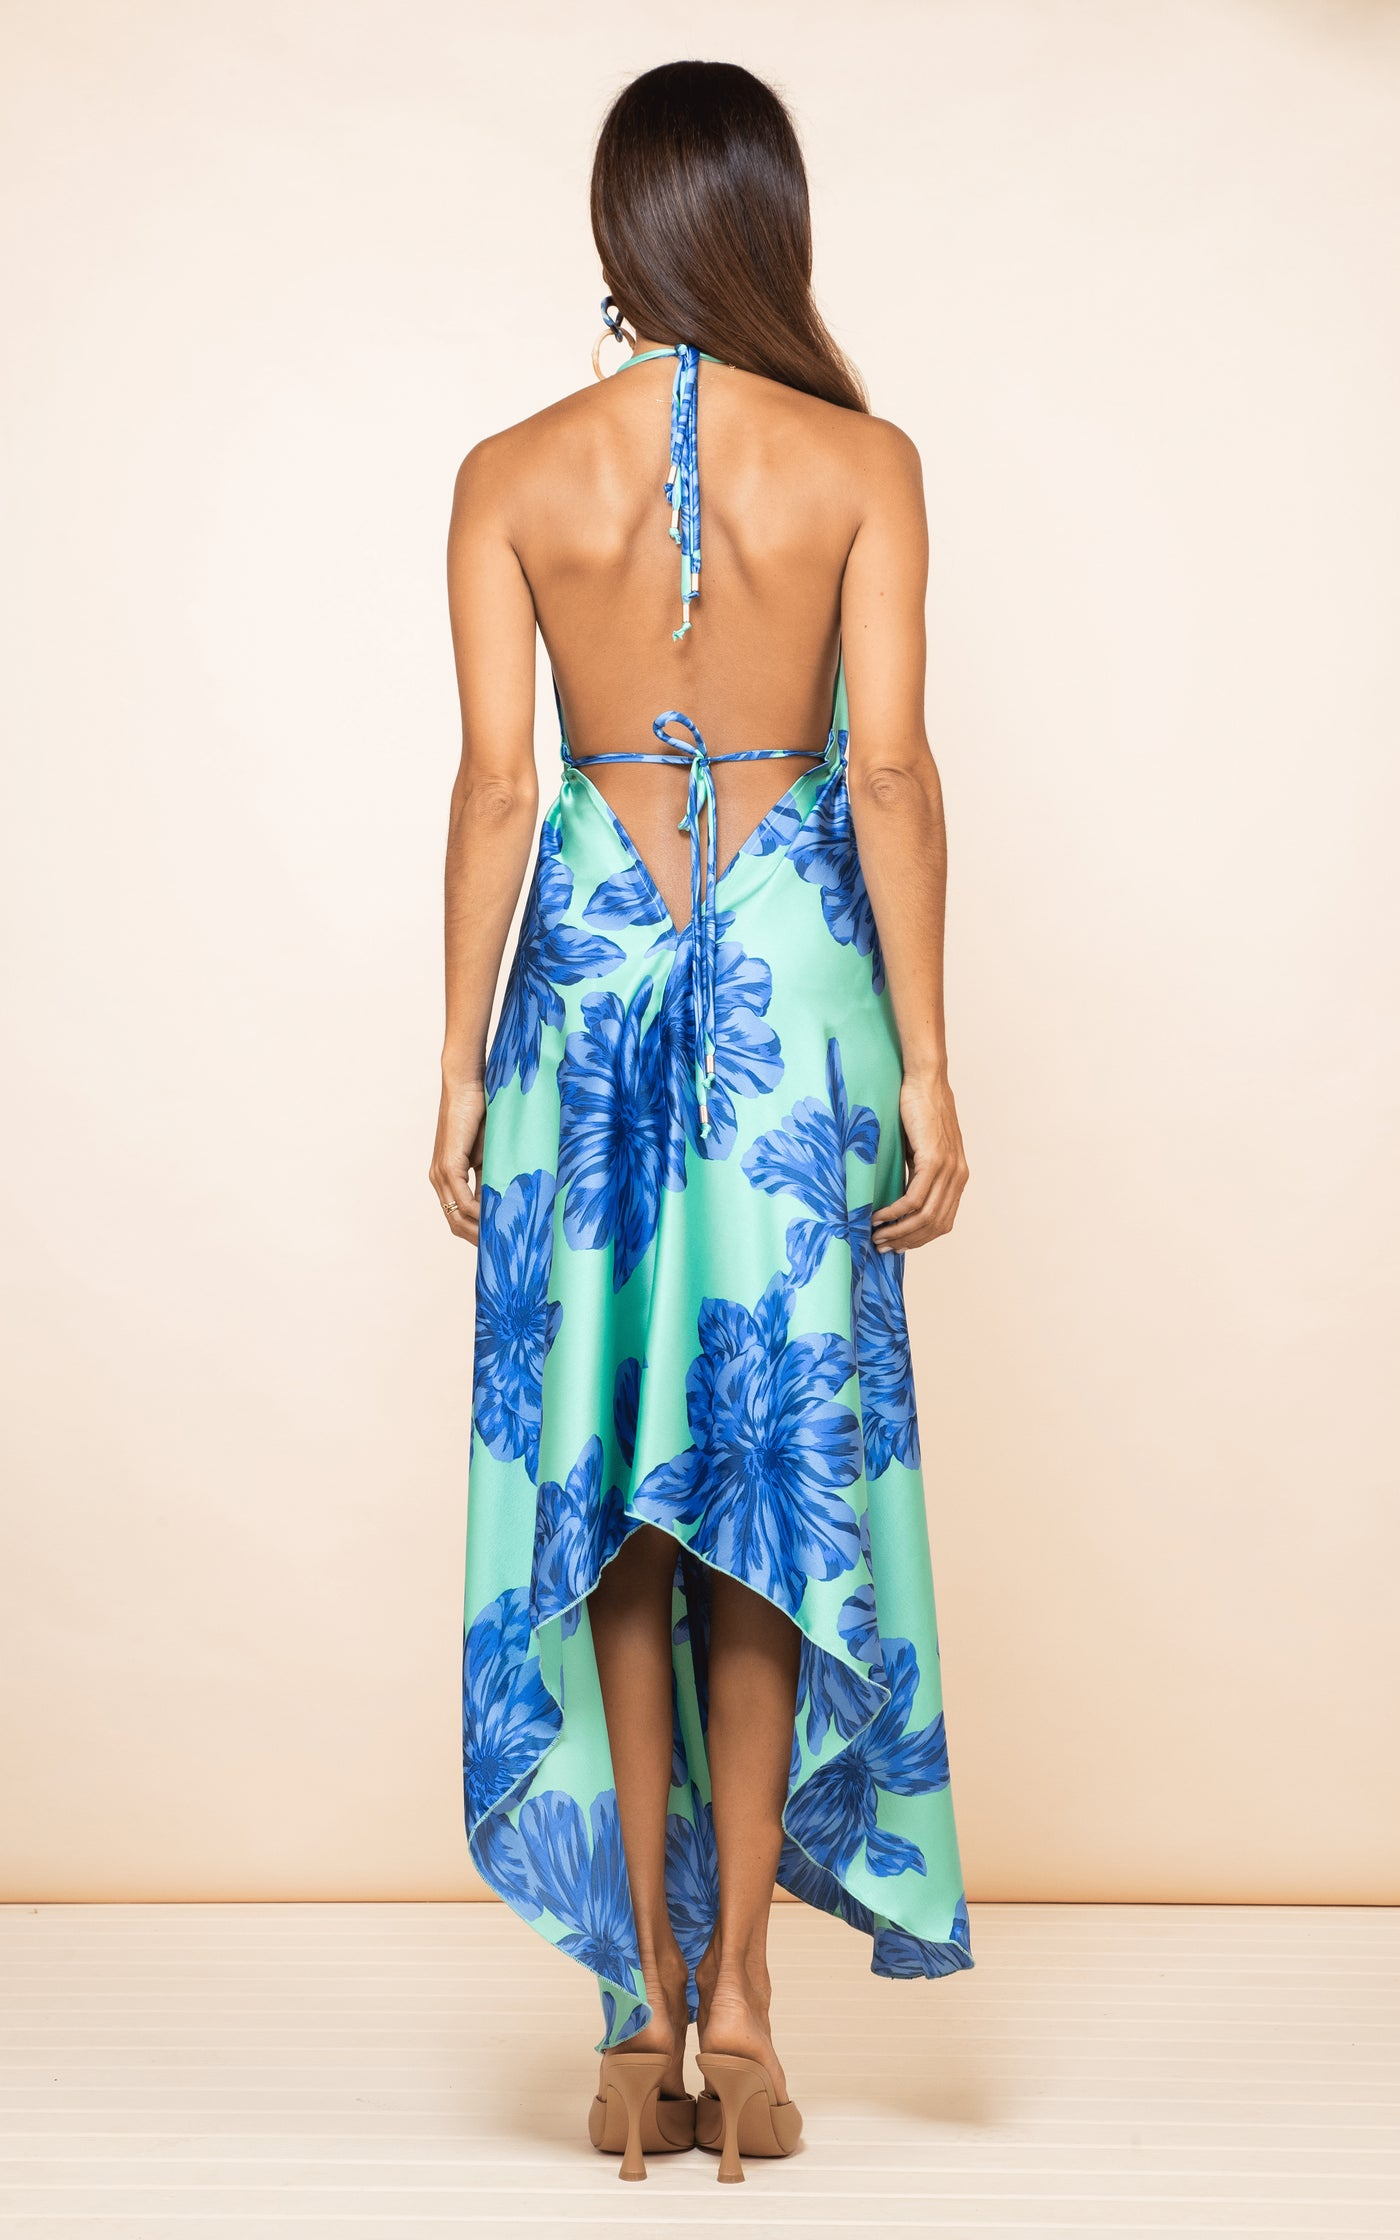 Backwards facing Dancing Leopard model with brown hair wears Boho Maxi Dress in Blue on Mint Bloom and earrings